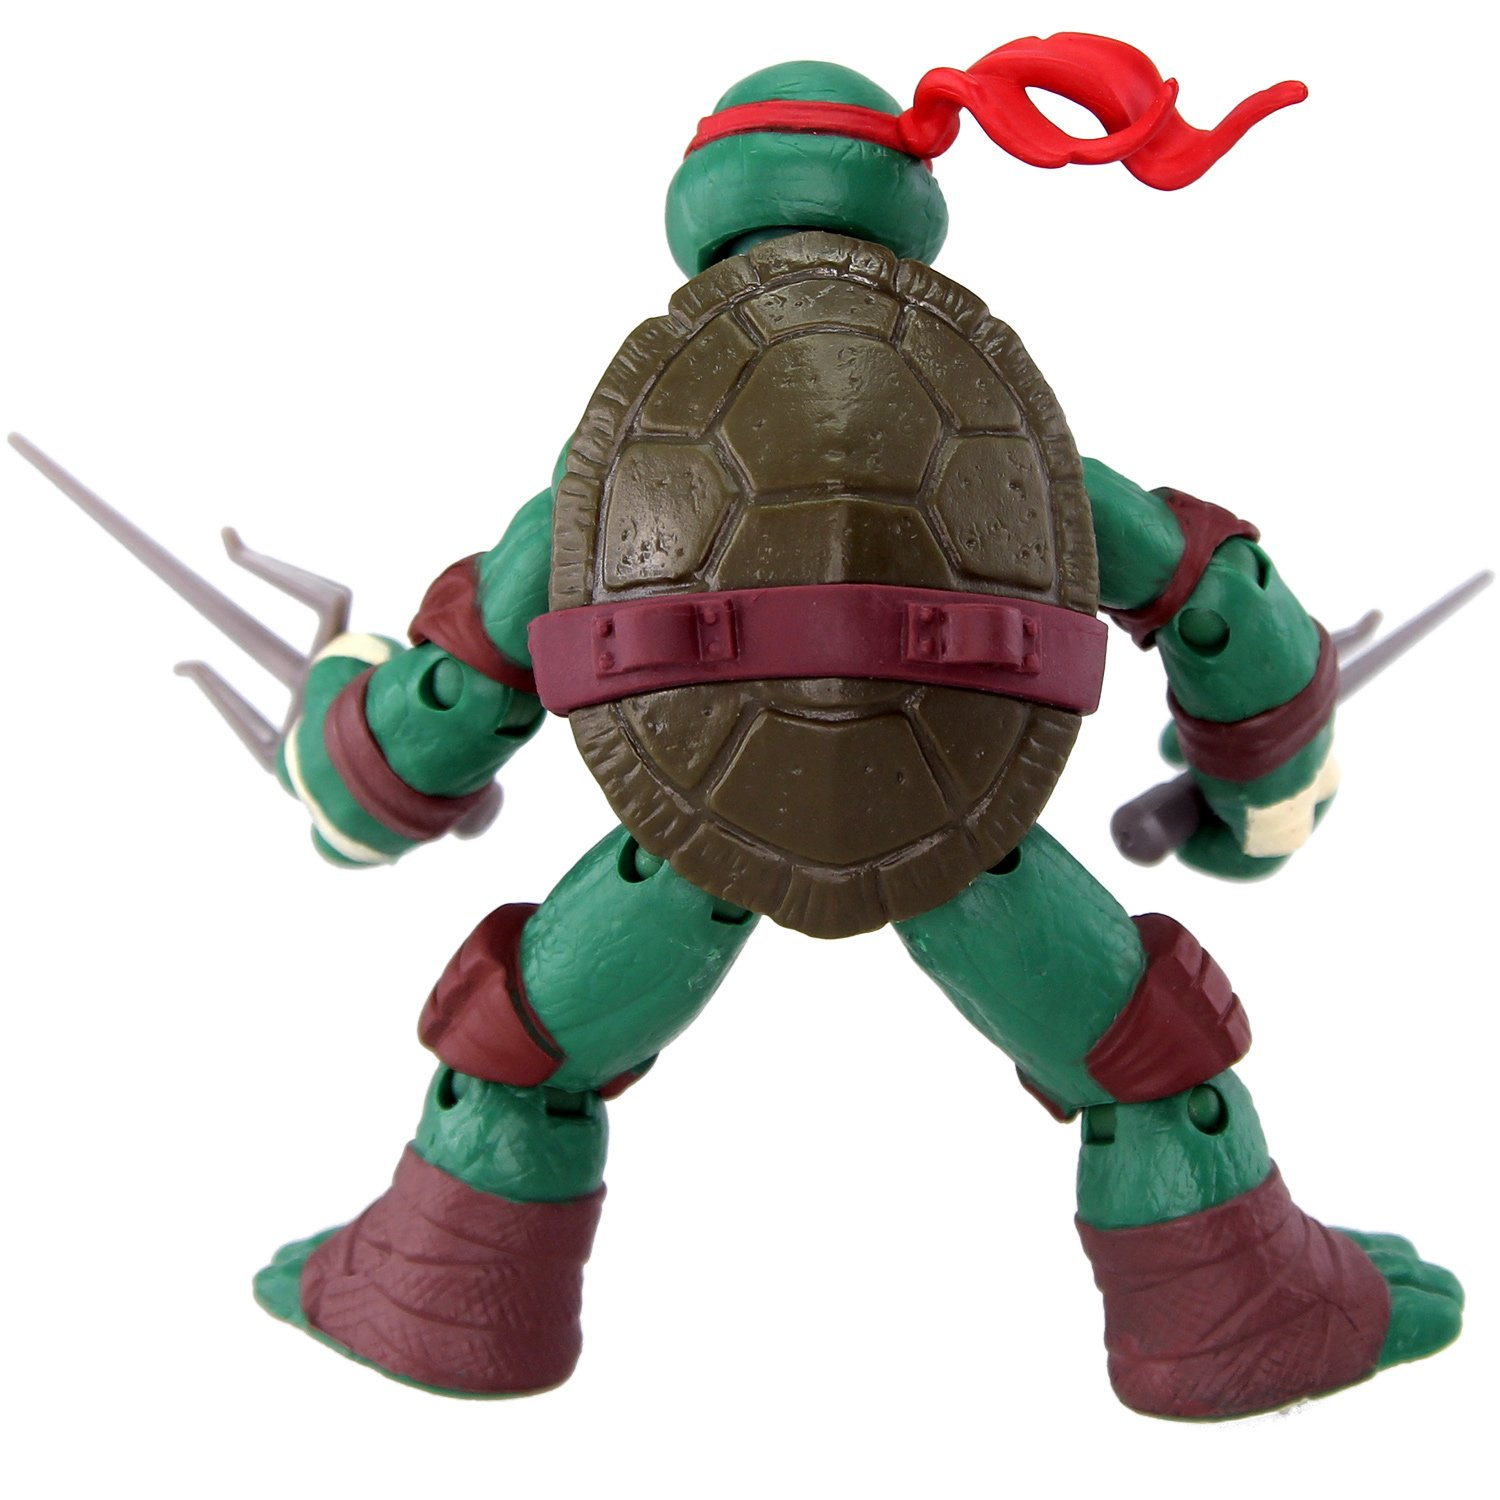 Teenage Teenage Teenage Mutant Ninja Turtles Actionfigur, Fußsoldat 3111af